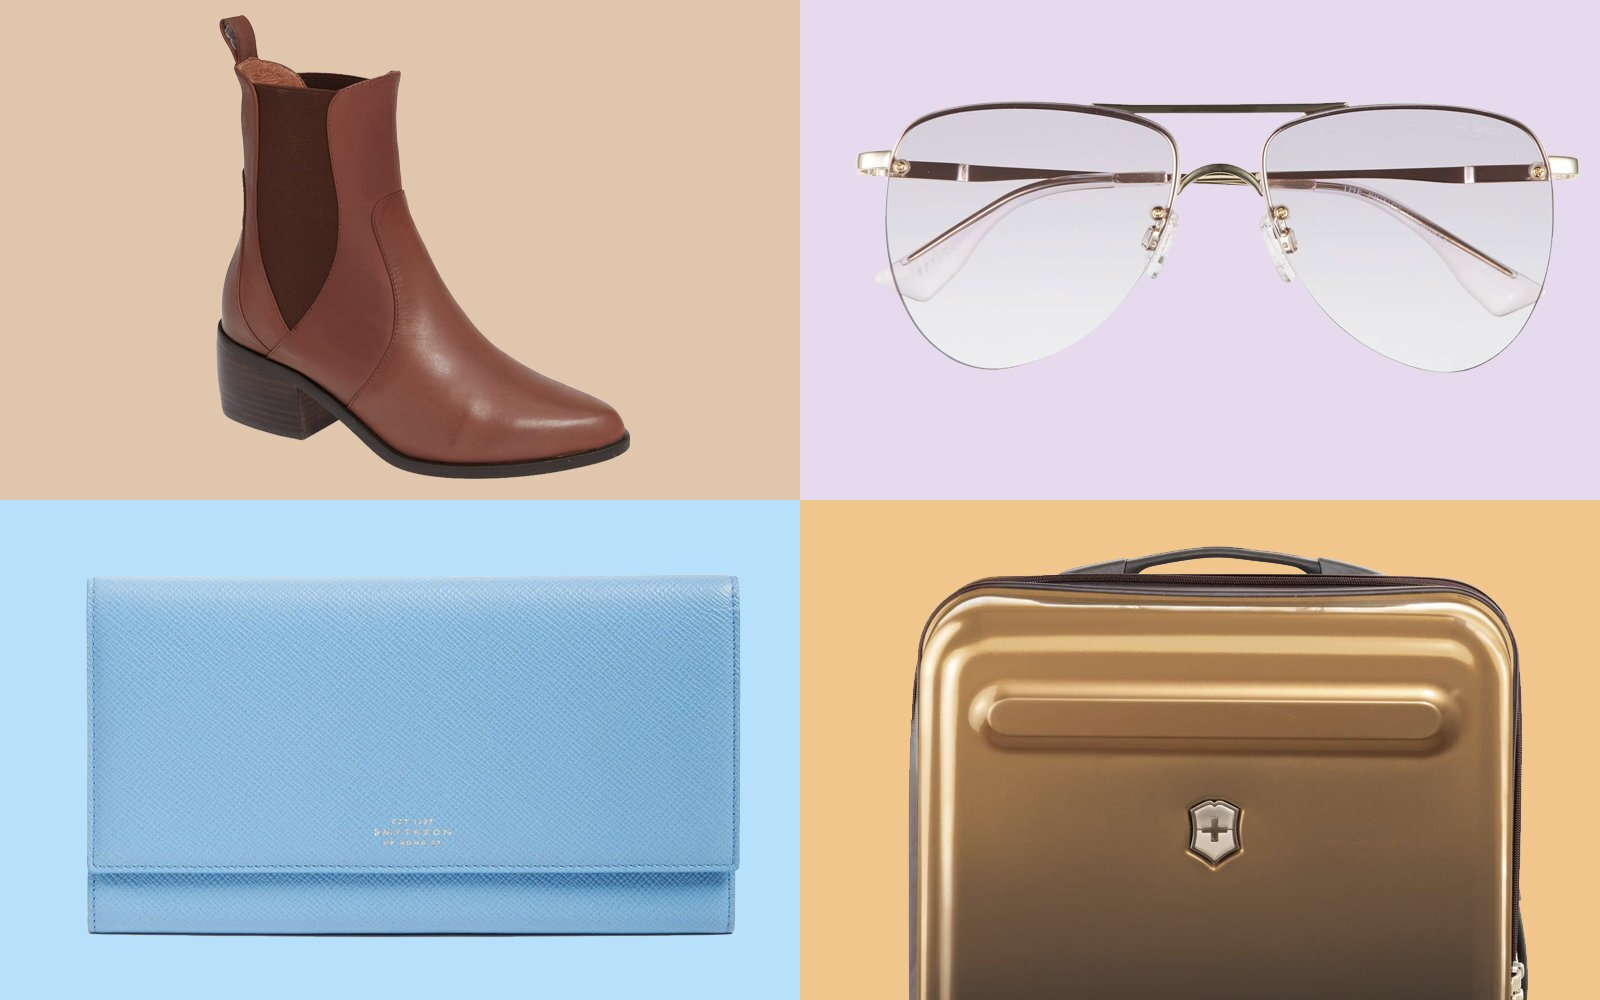 d0112345cc4 26 Seriously Discounted Travel Finds From Nordstrom s Black Friday Sale